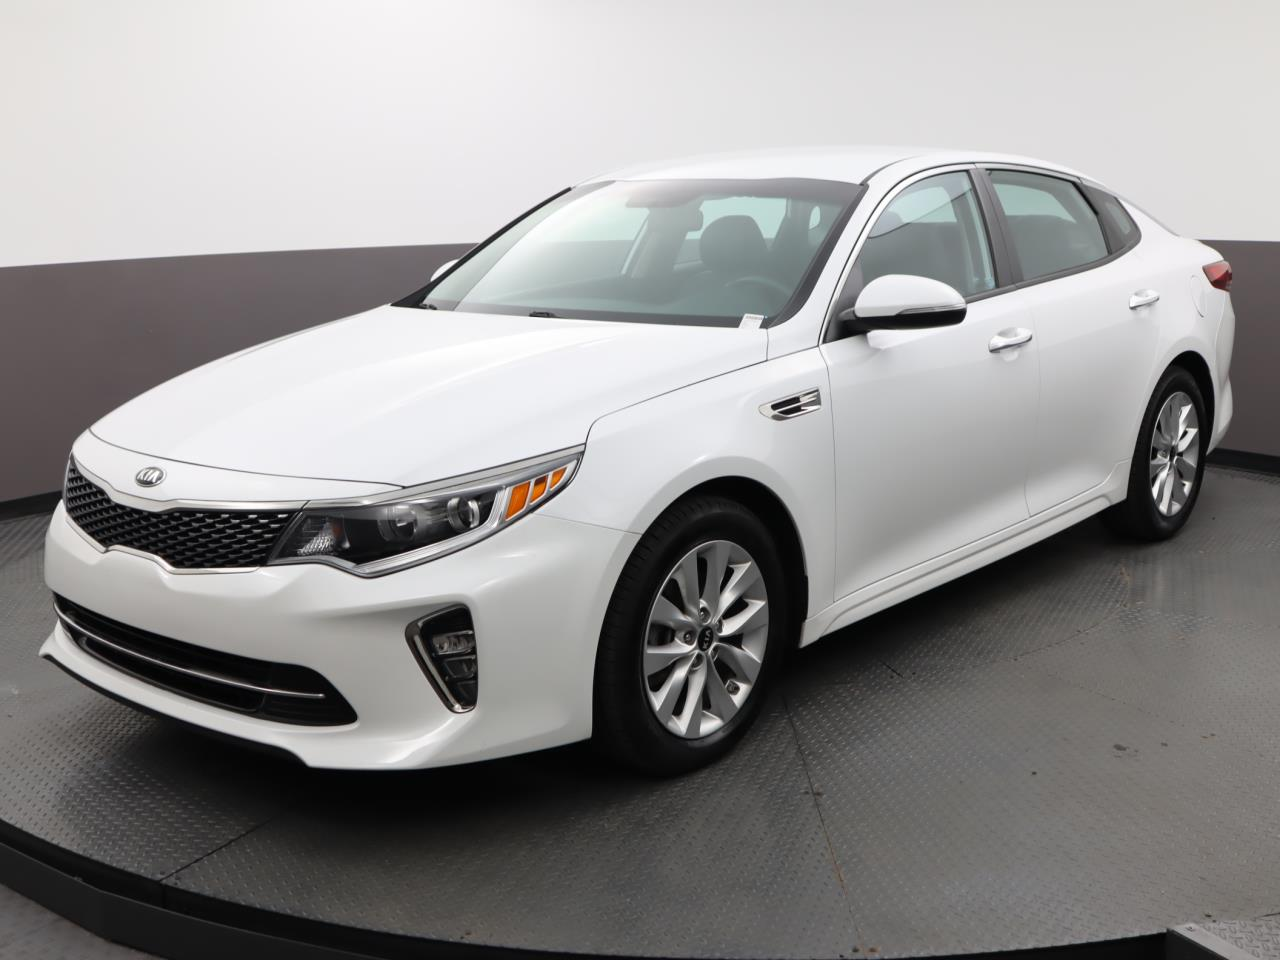 Used KIA OPTIMA 2018 MIAMI S